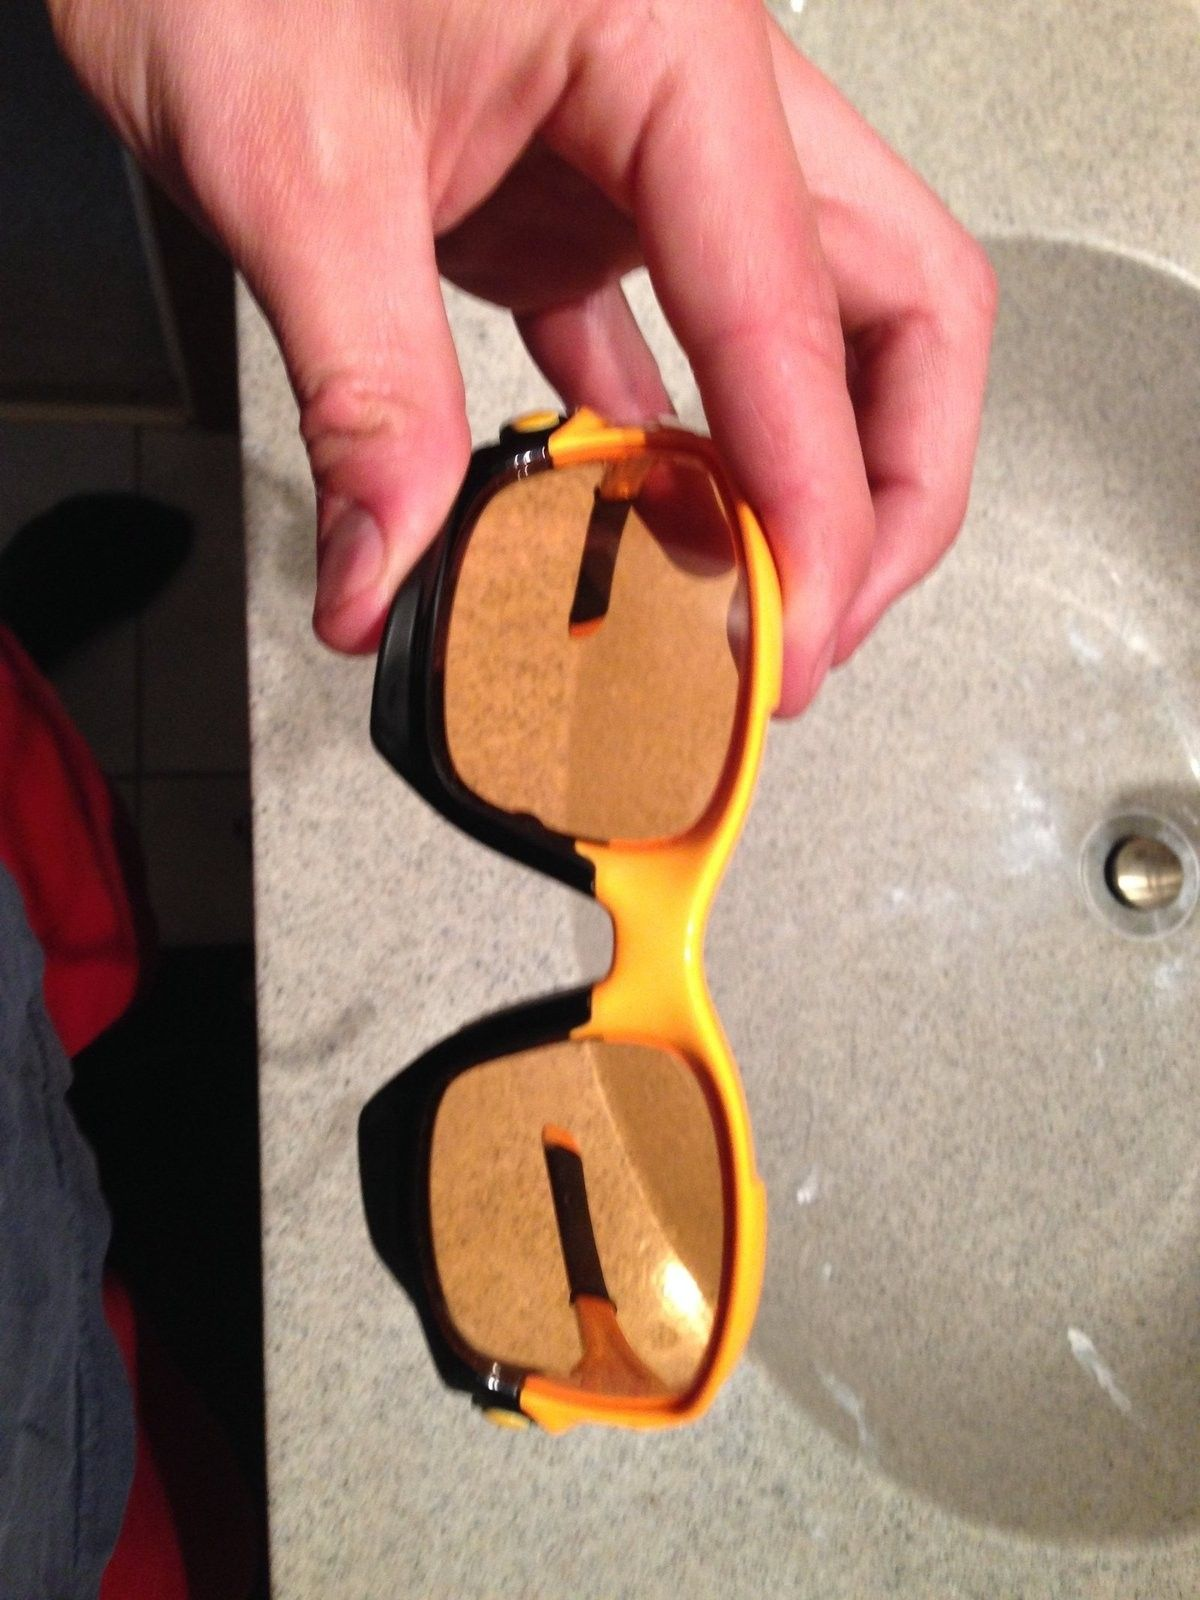 Atomic Orange Jawbone - Real vs. Fake? - image5.JPG